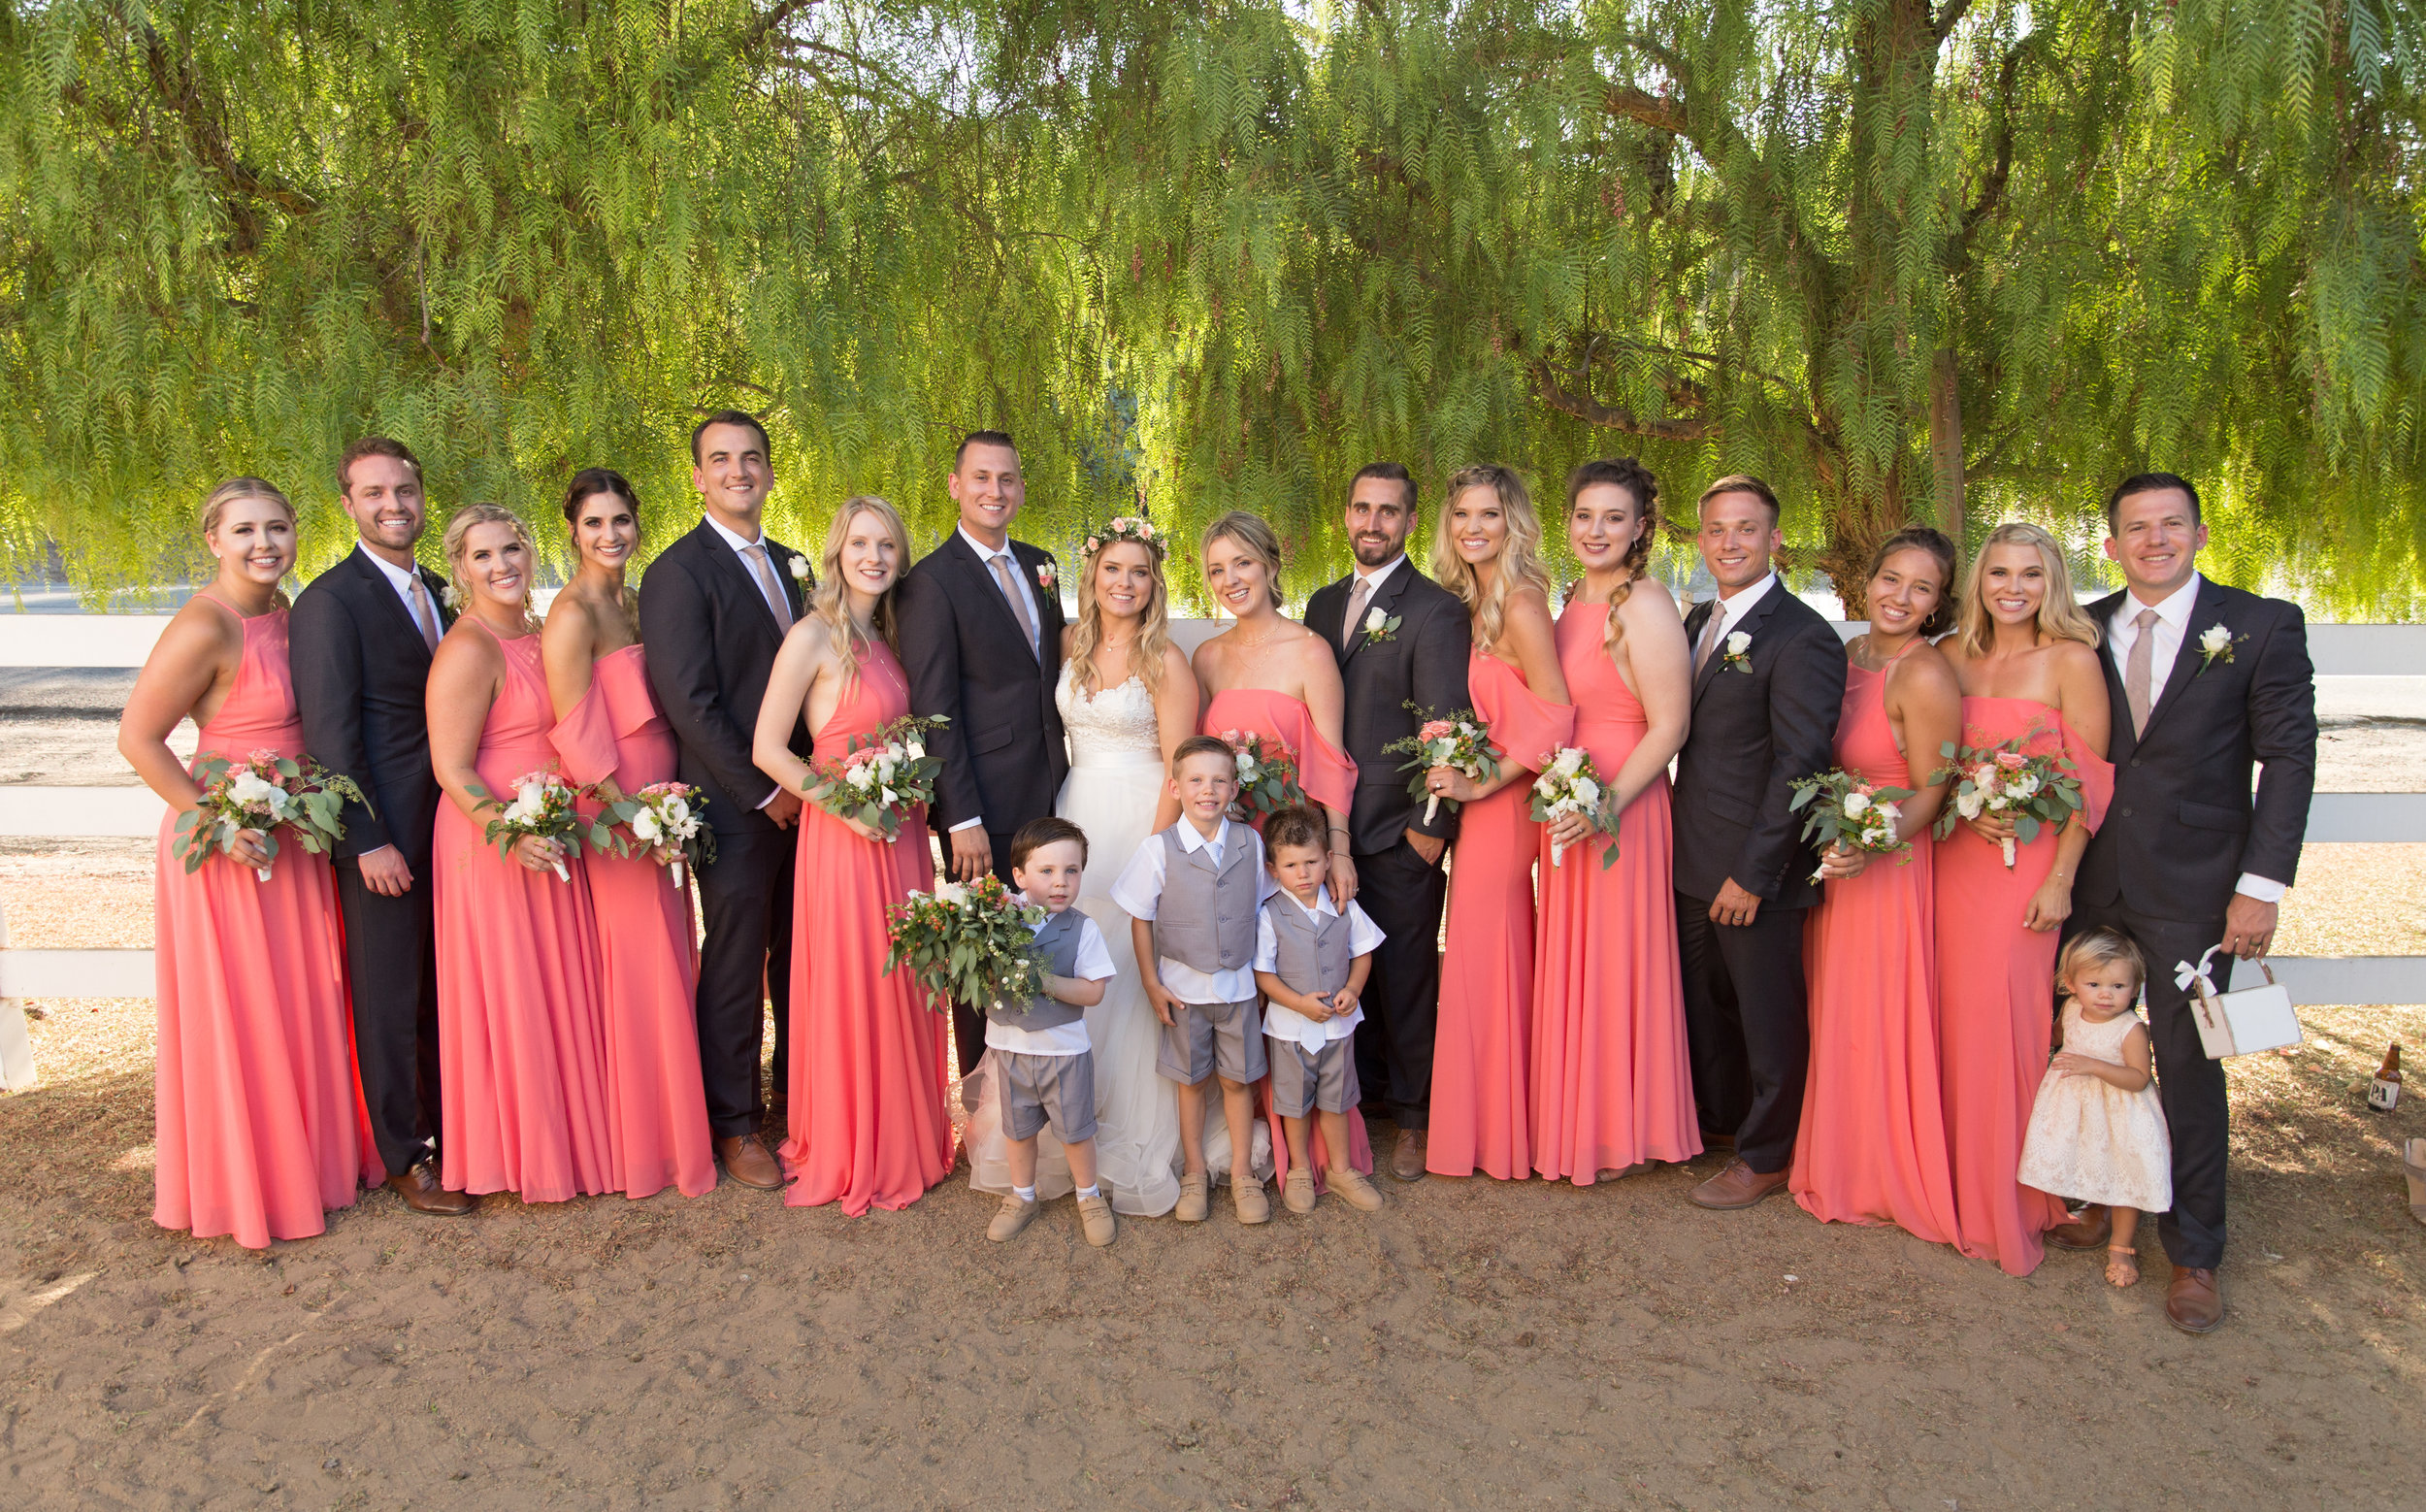 - The wedding party where your closest of friends and family stand next to you and celebrate the beginning of the newest chapter in life.